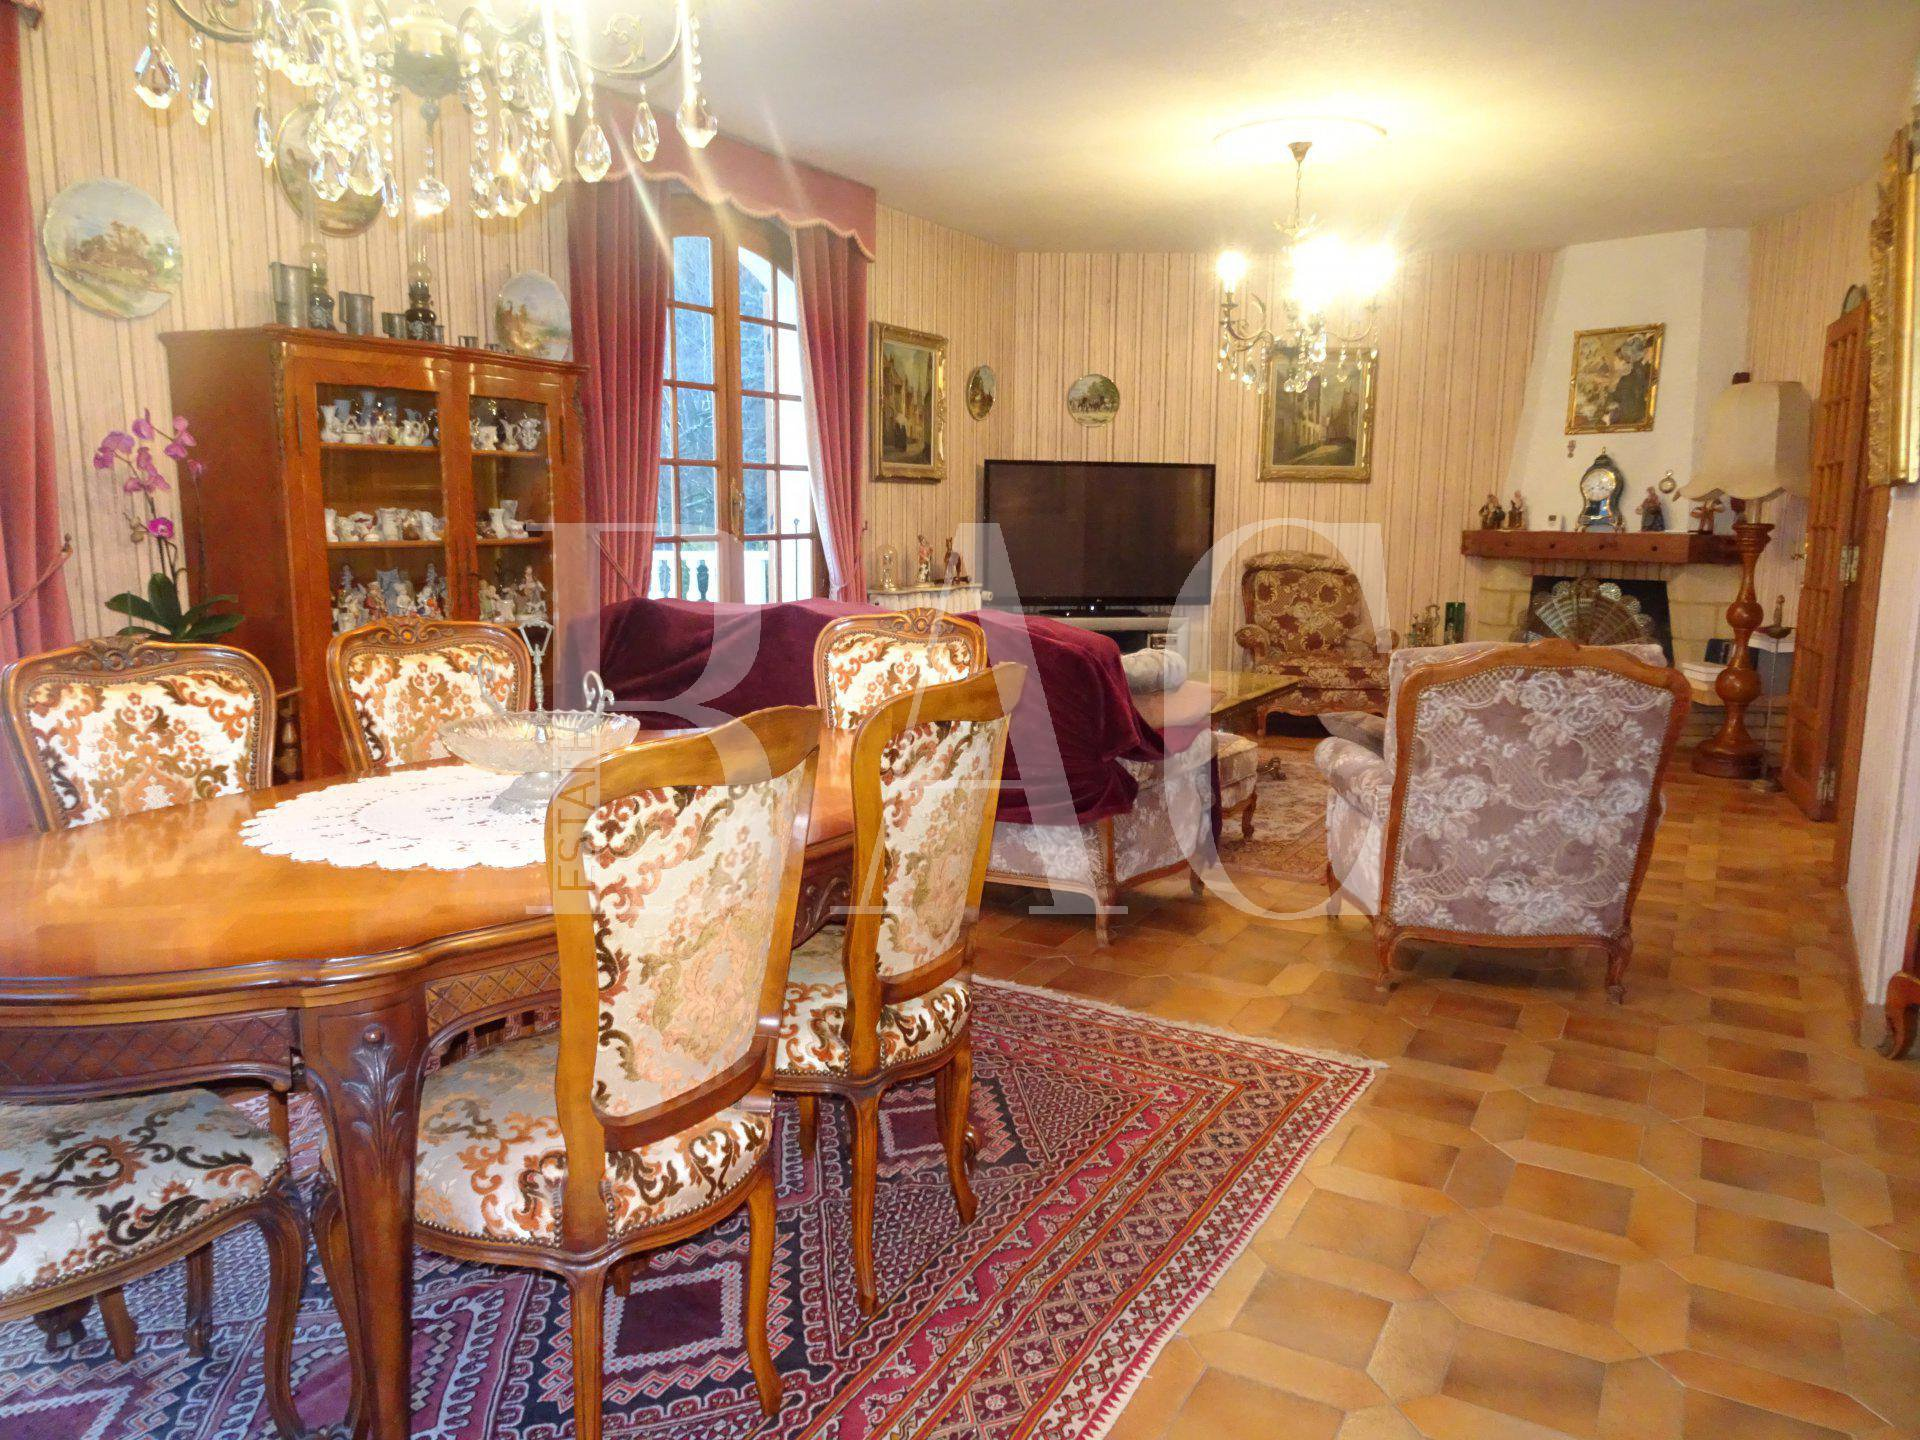 Near Grenoble, 600m² built villa with panoramic views over plain and mountains